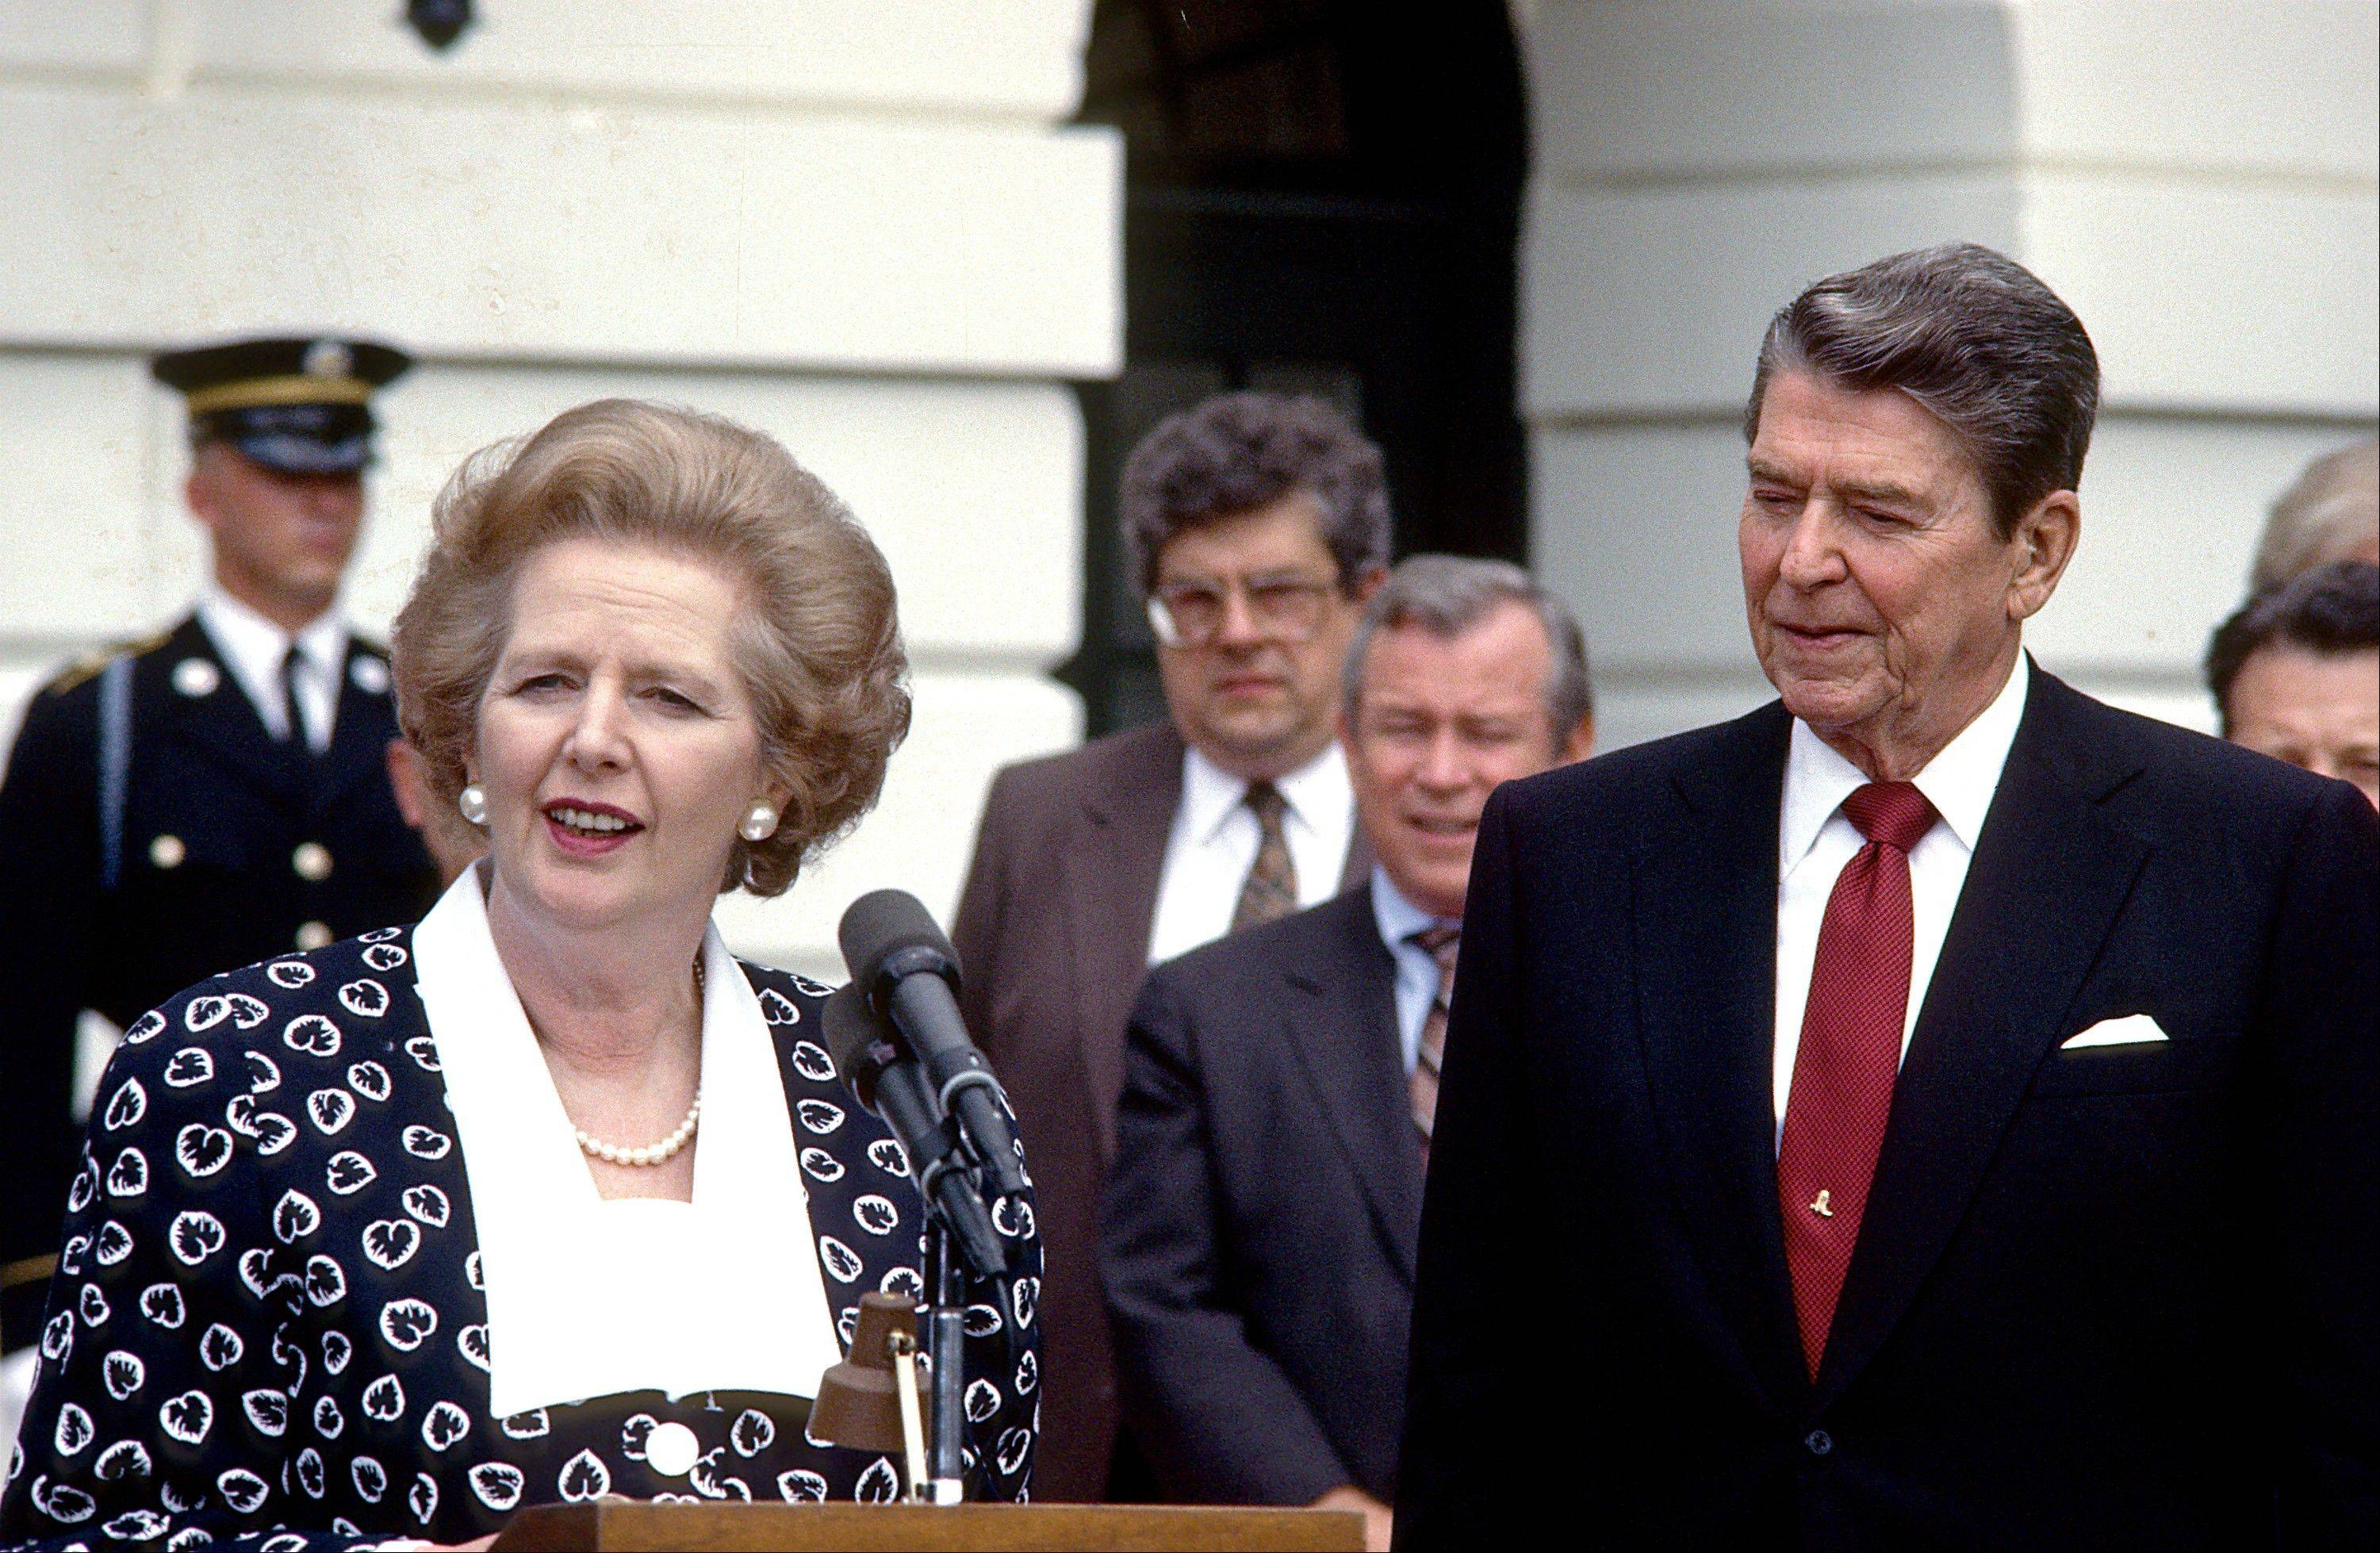 In a Friday, July 17, 1987 file photo, Prime Minister Margaret Thatcher of the United Kingdom, left, makes remarks after visiting United States President Ronald Reagan, right, at the White House in Washington, D.C. Thatchers former spokesman, Tim Bell, said that the former British Prime Minister Margaret Thatcher died Monday morning, April 8, 2013, of a stroke. She was 87.